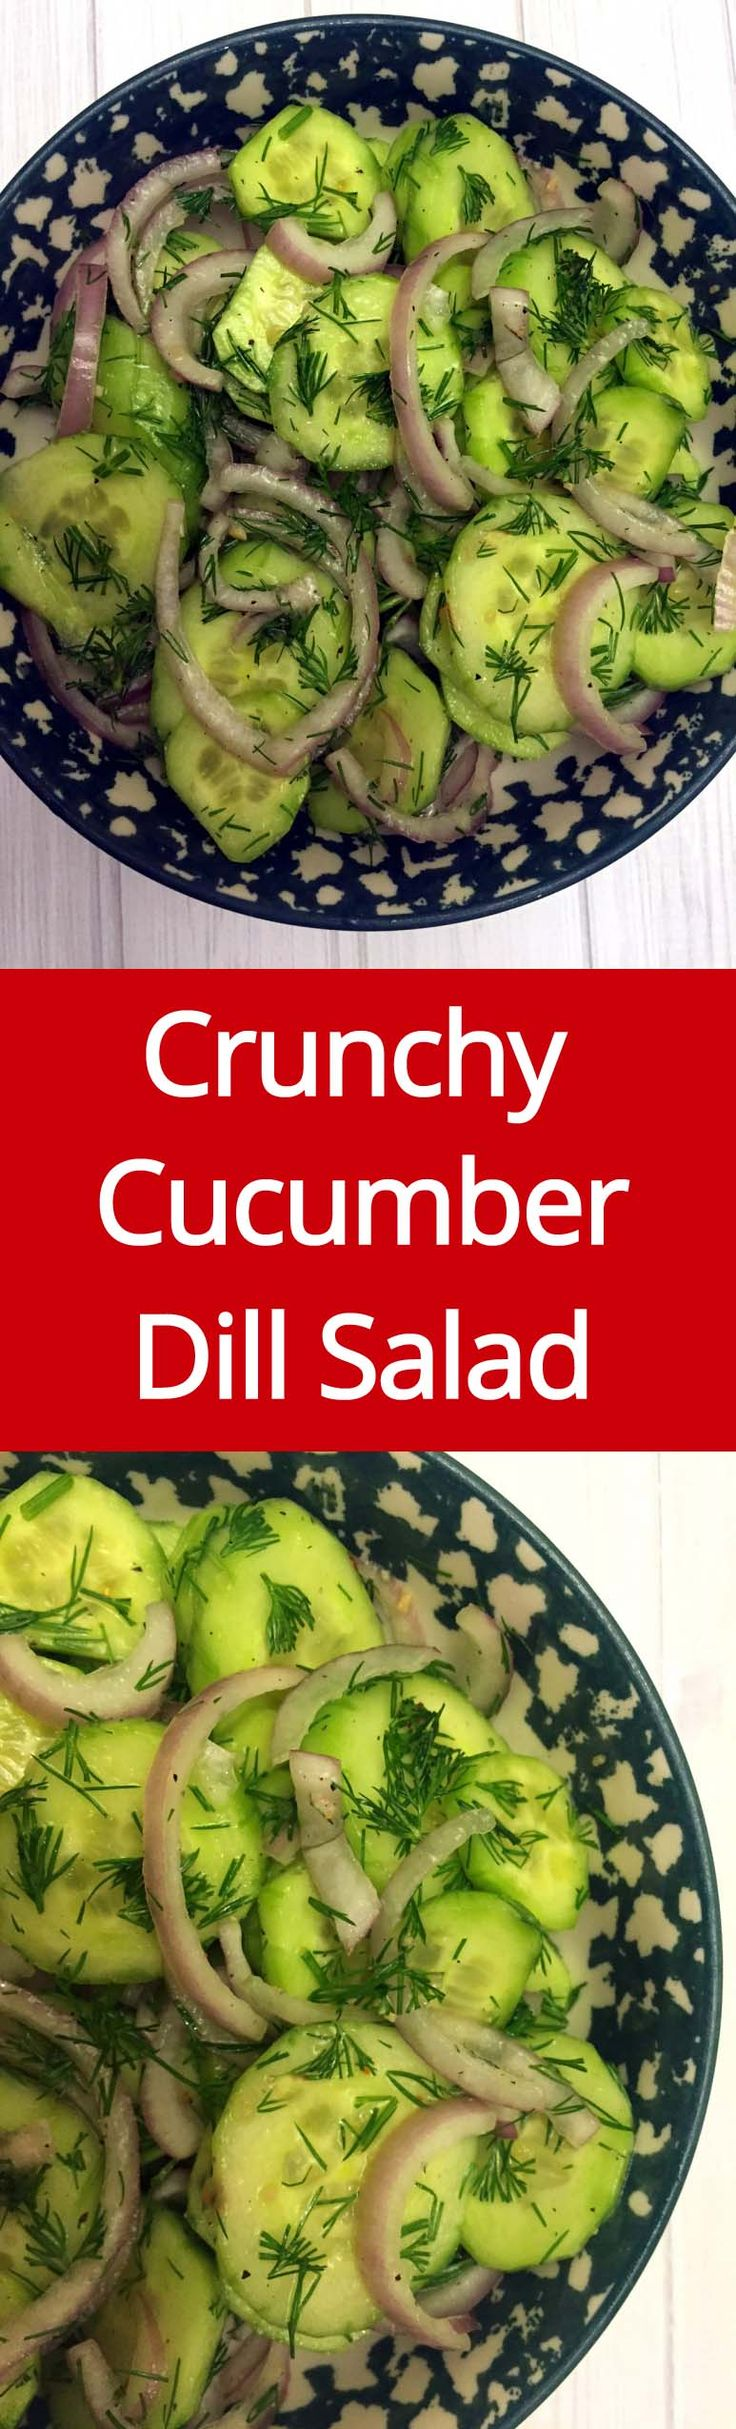 1000+ ideas about Cucumber Dill Salad on Pinterest ...